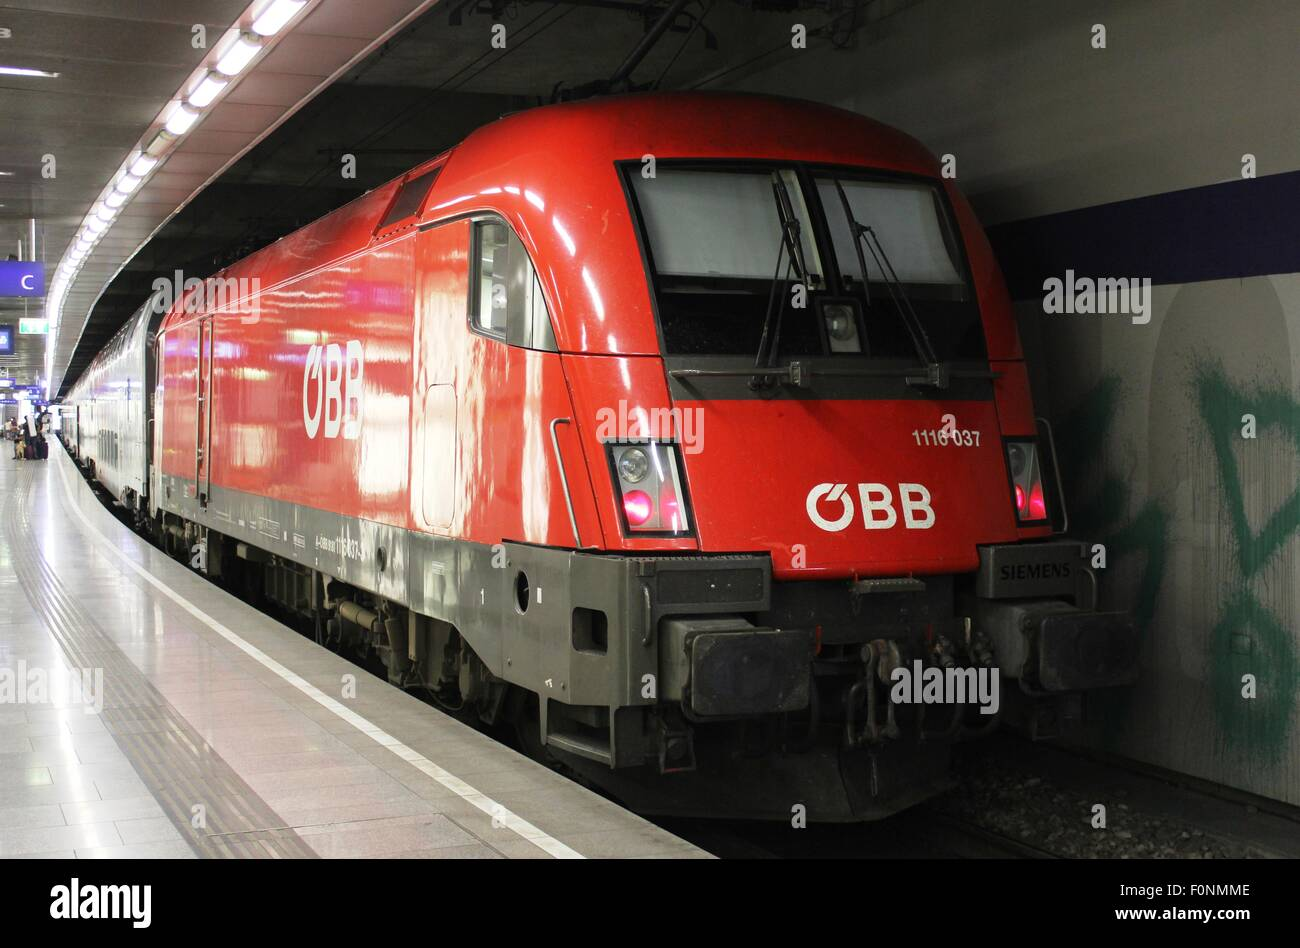 Red electric locomotive in OBB livery, with passenger train at a platform in Vienna Mitte railway station in Austria. - Stock Image